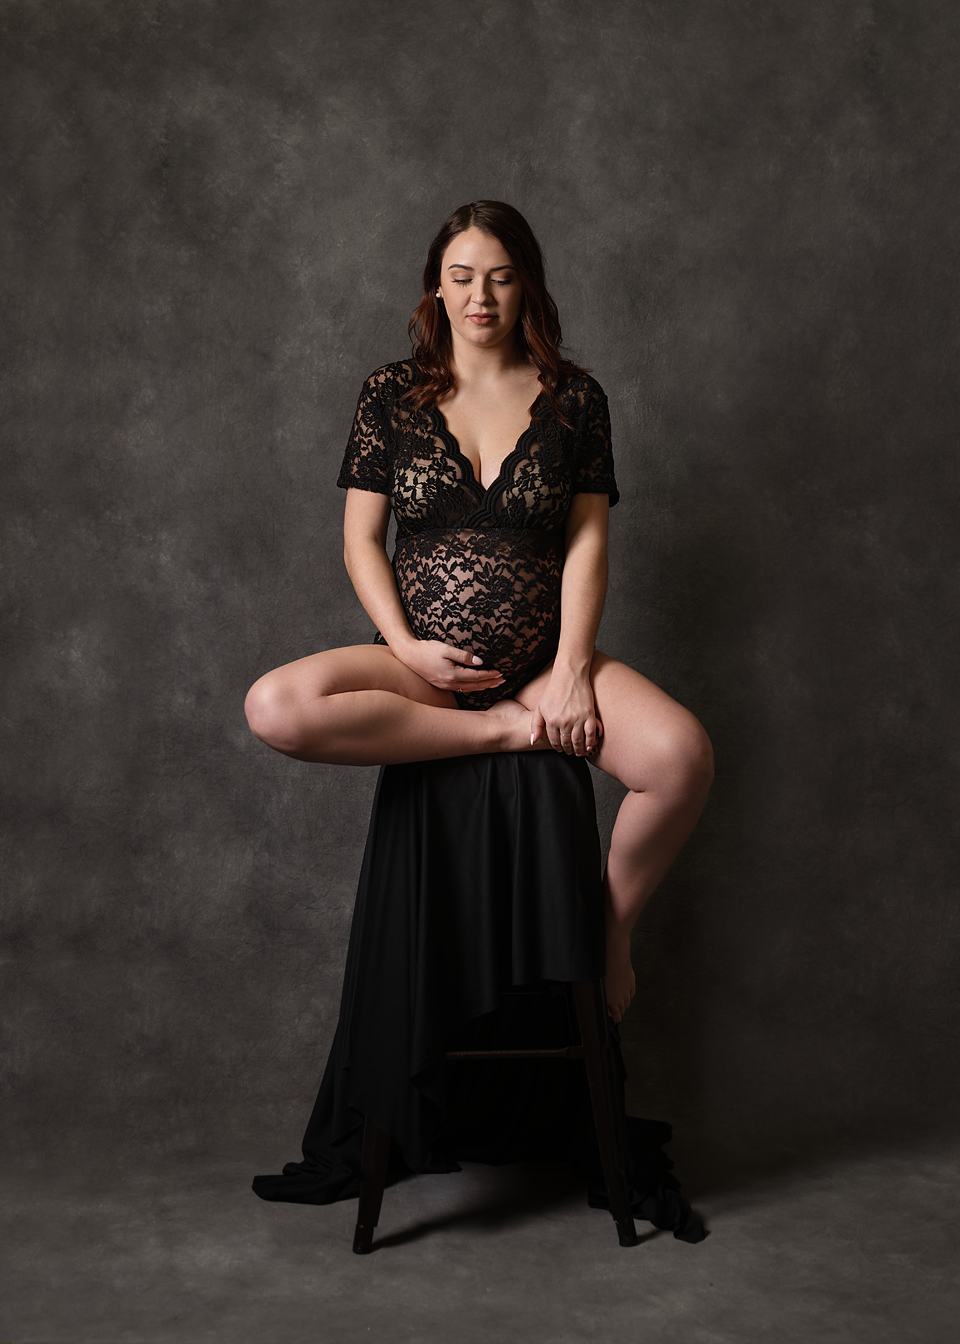 Studio maternity session in Vass. Fine art maternity boudoir Southern Pines. Studio pregnancy session